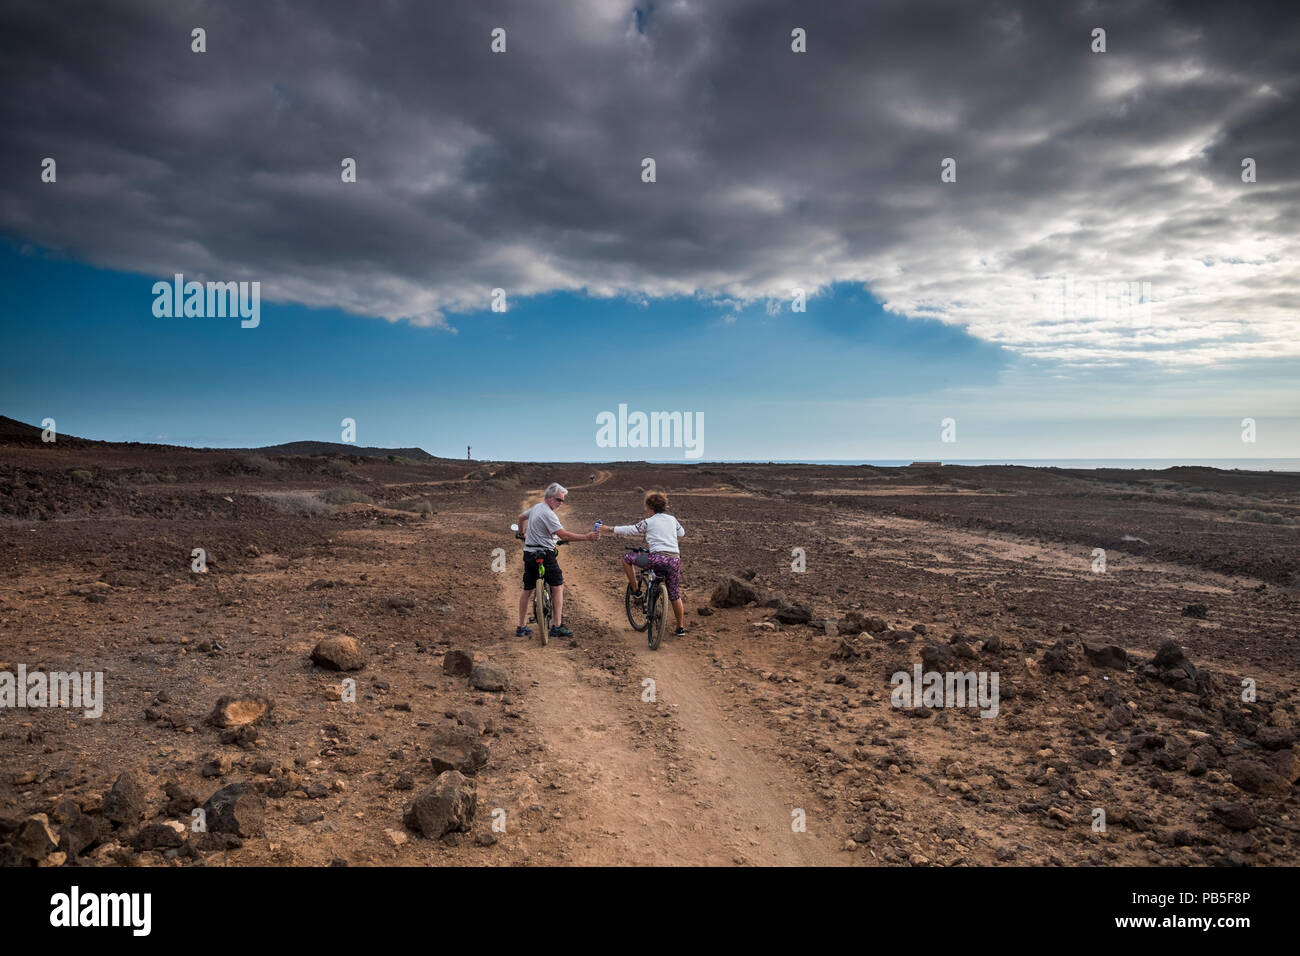 couple of rider with mountain bike follow a path in the middle of an arid desert. vacation and discover adventure in leisure sport activity for caucas - Stock Image